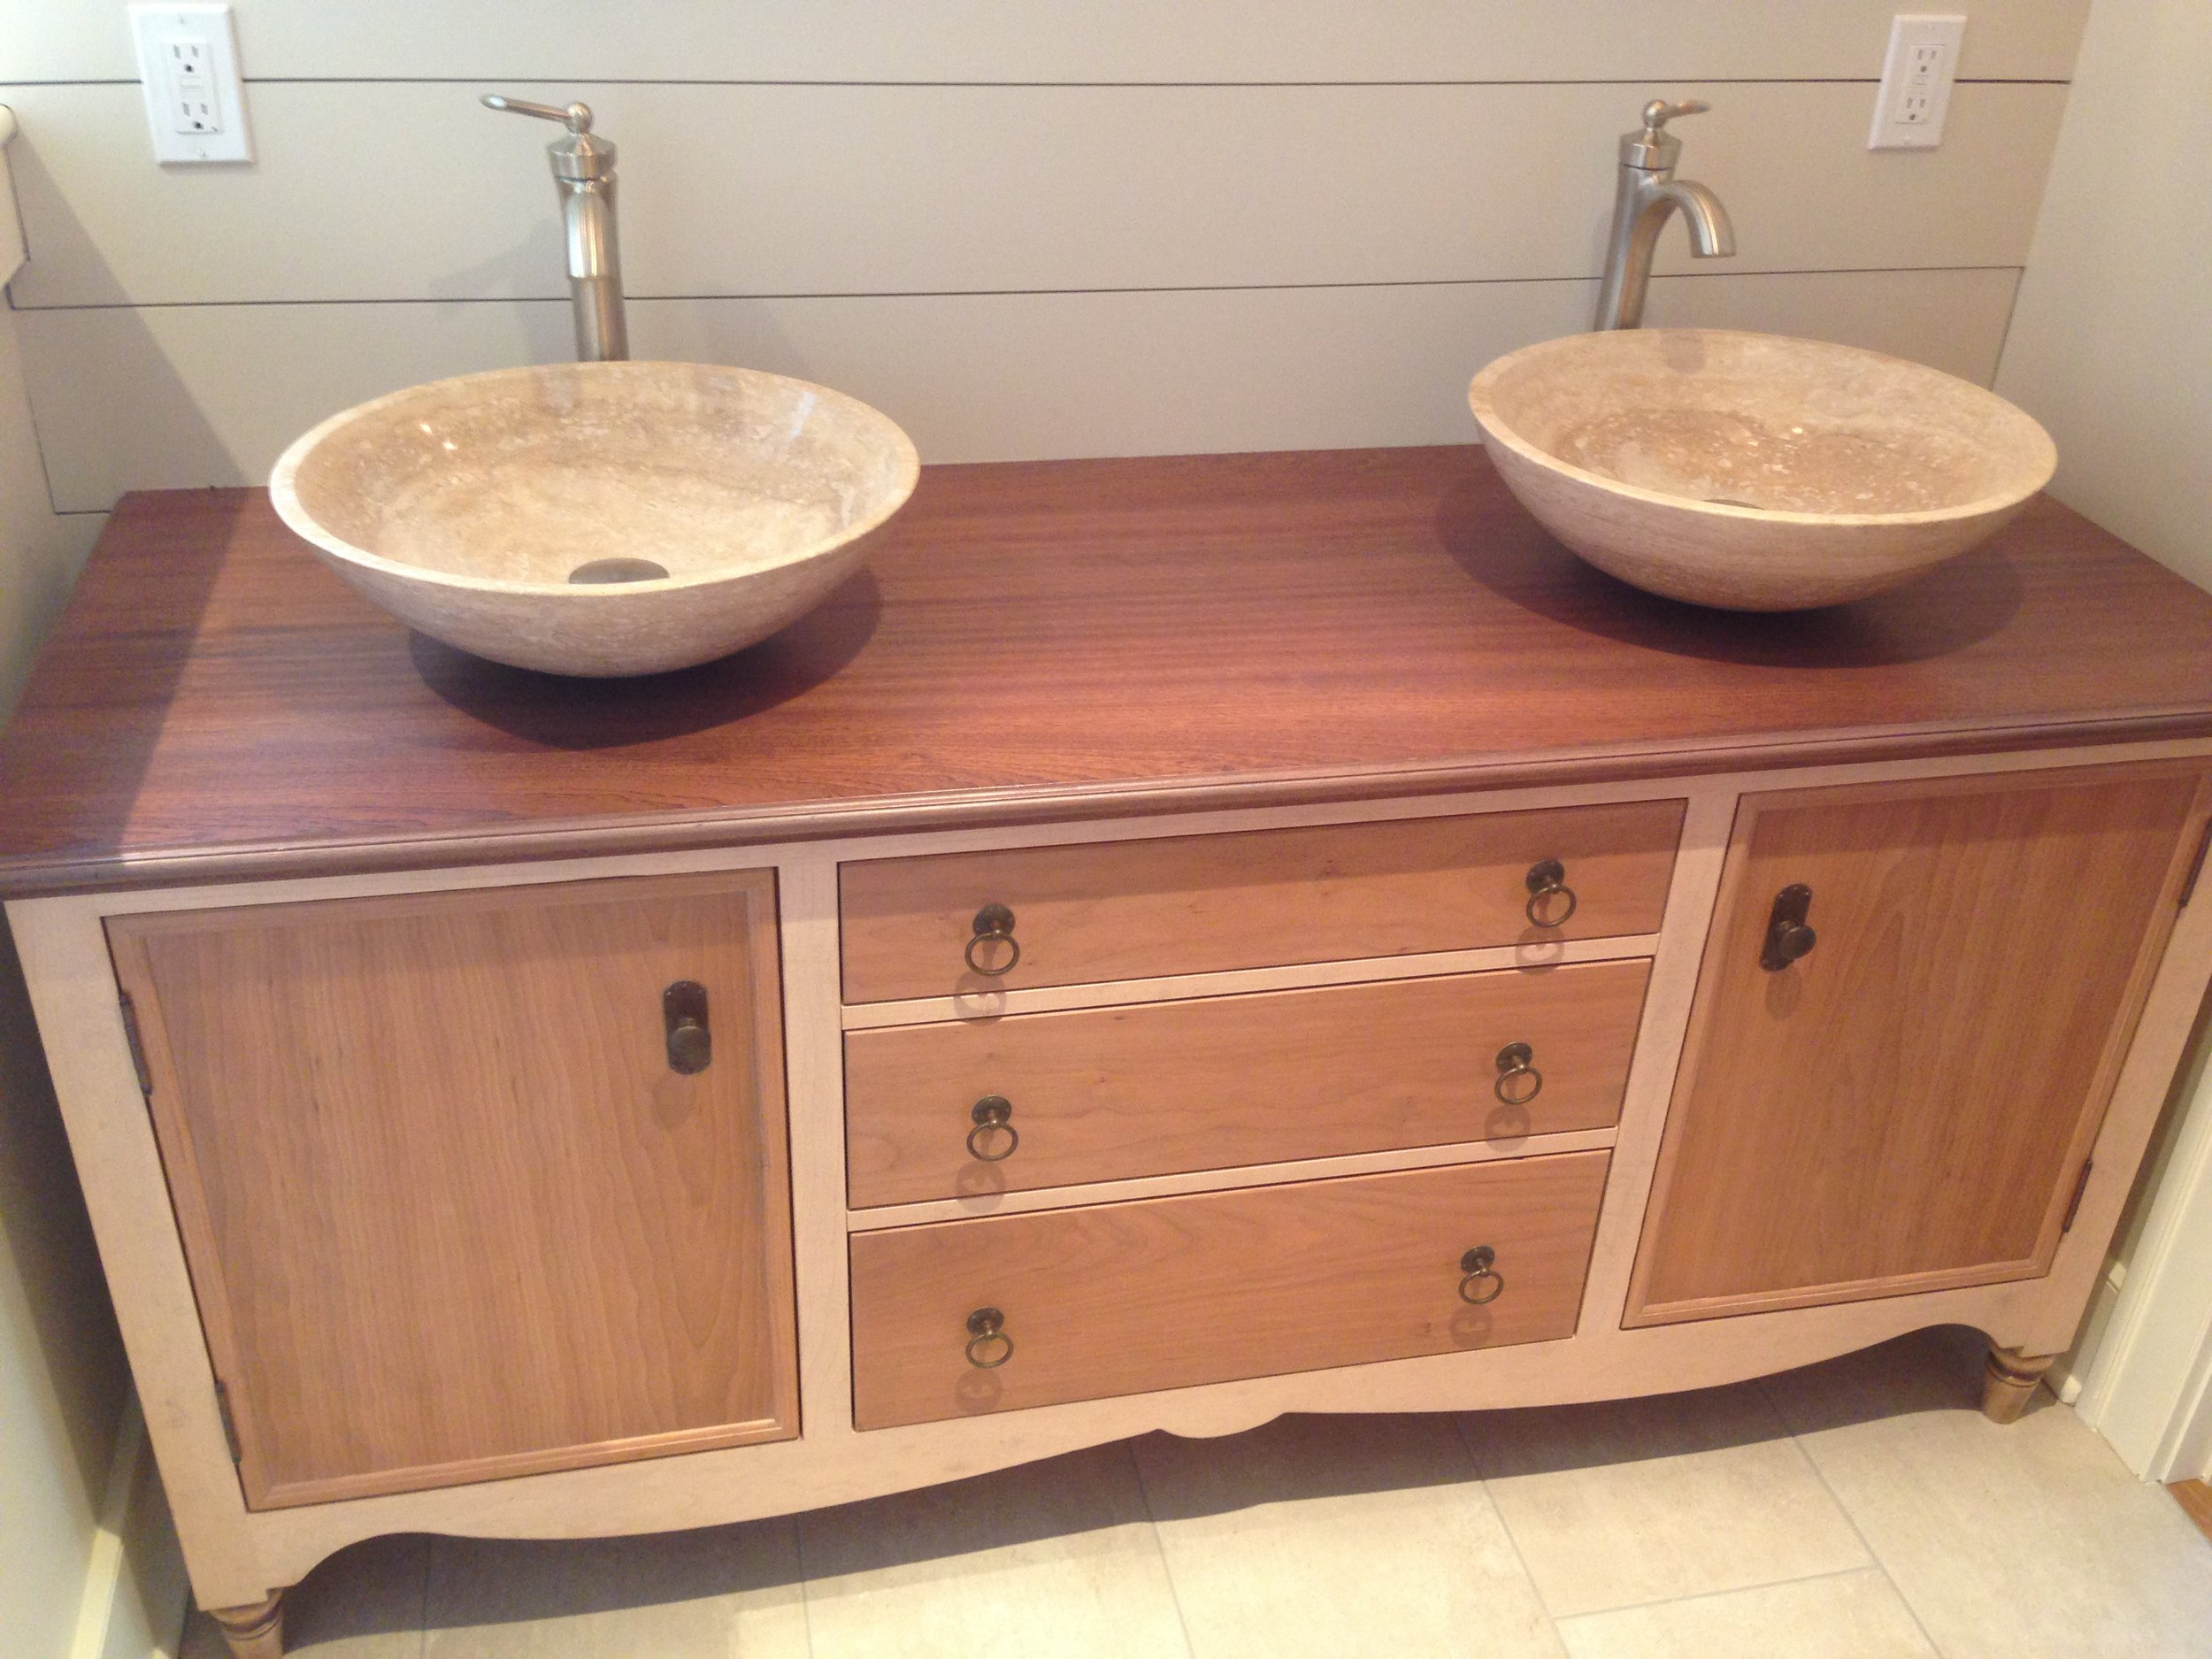 Master Bath Vanity of Maple and Cherry, with Mahogany Top, and Travertine Vessel Sinks 2.jpg